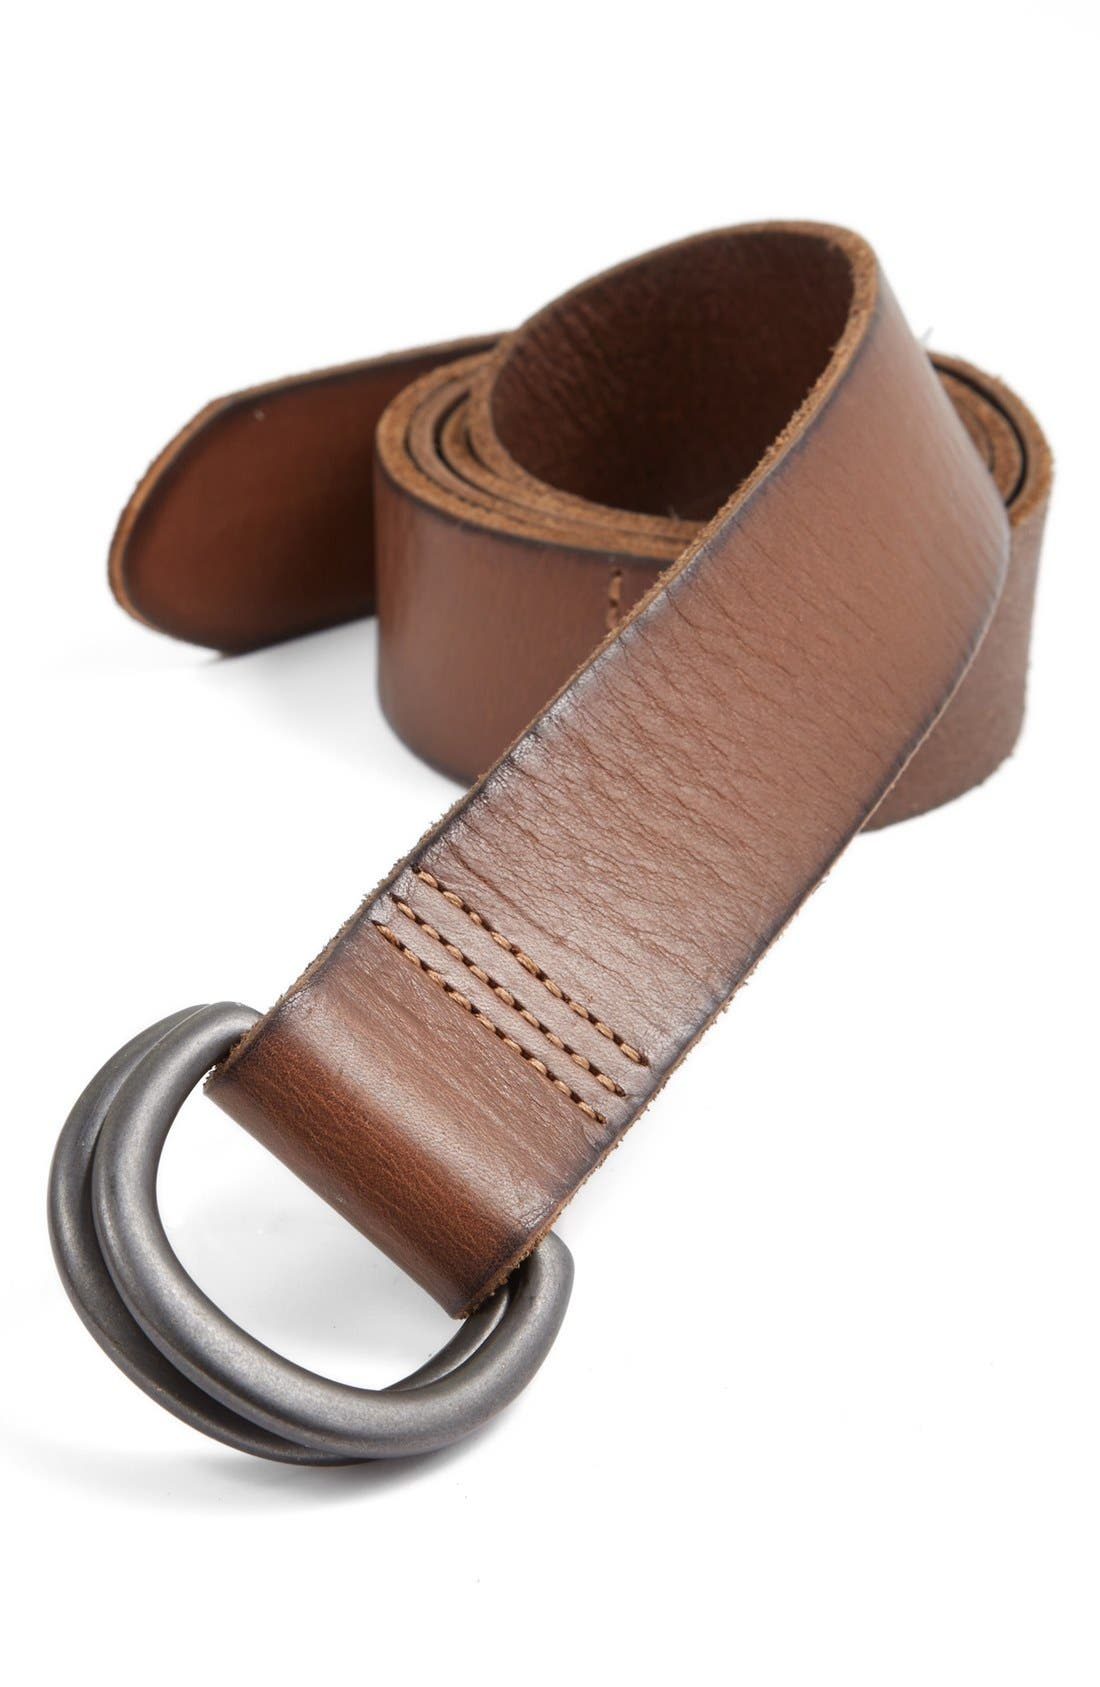 Alternate Image 1 Selected - The Rail Leather Belt with D-Ring Buckle